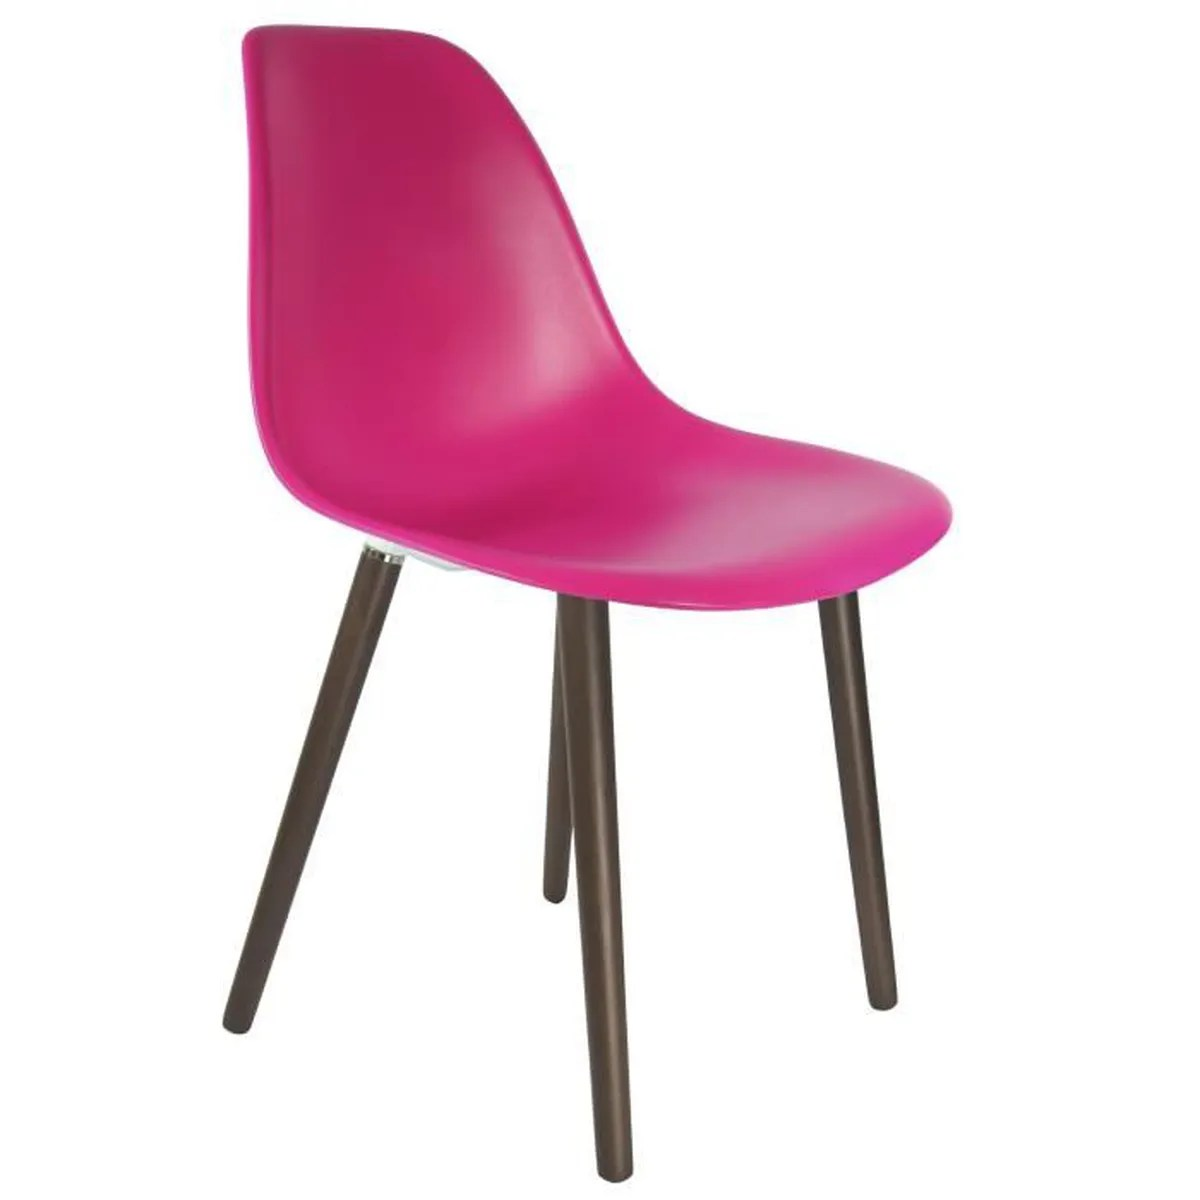 Chaises Privee Chaise Privee Chaise Stw Fuchsia Noyer Achat